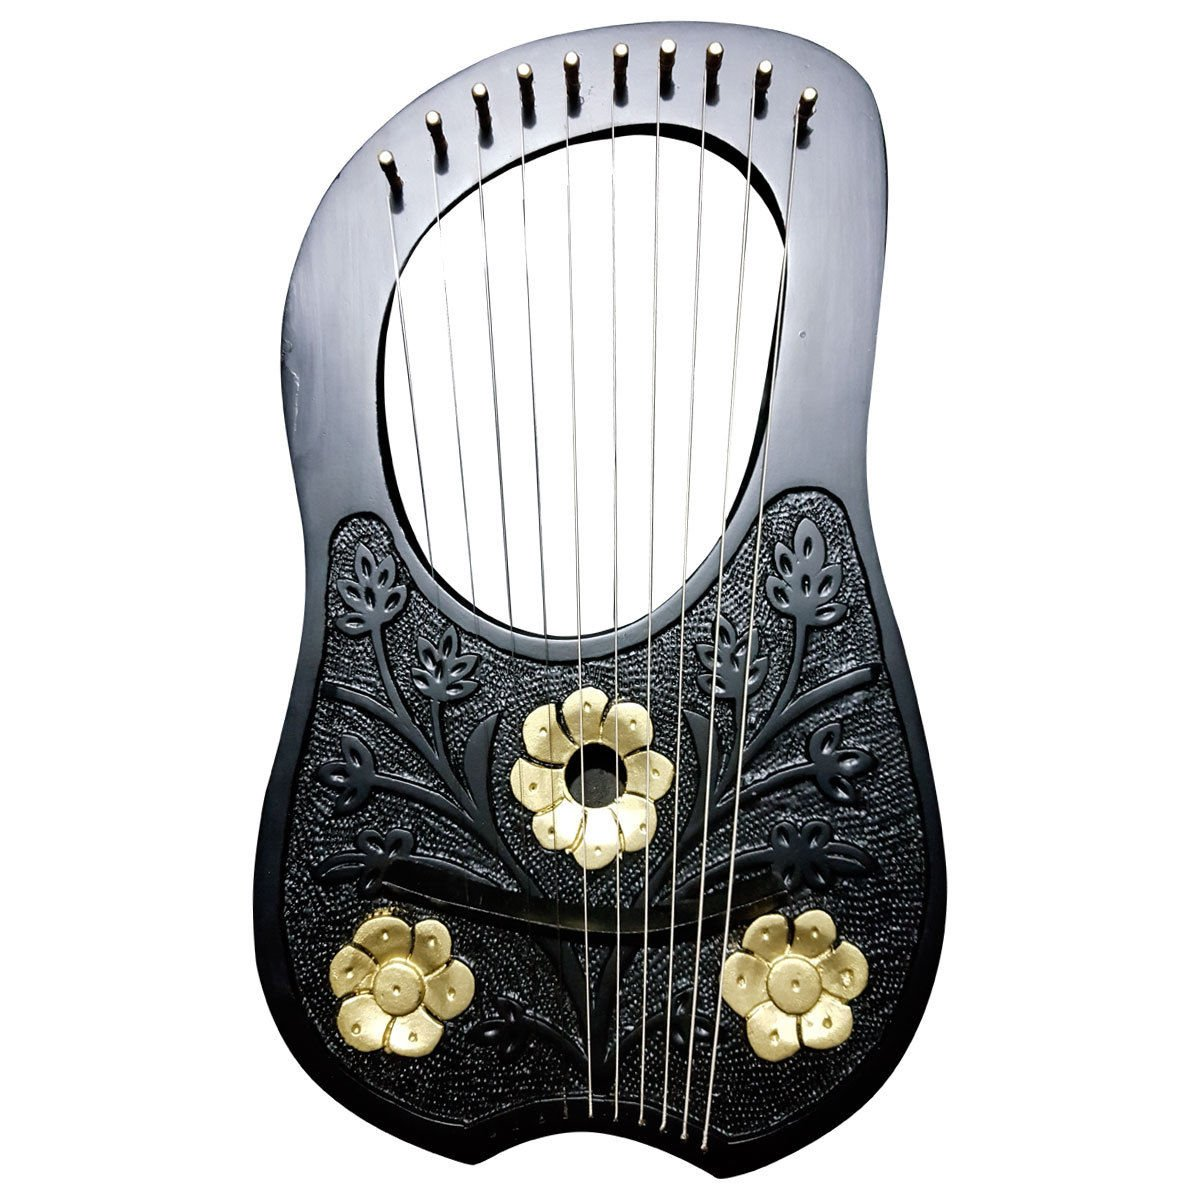 New Engraved Lyre Harp Rosewood 10 Metal Strings Free Carrying Case and Key/Lyra Harps,Harfe